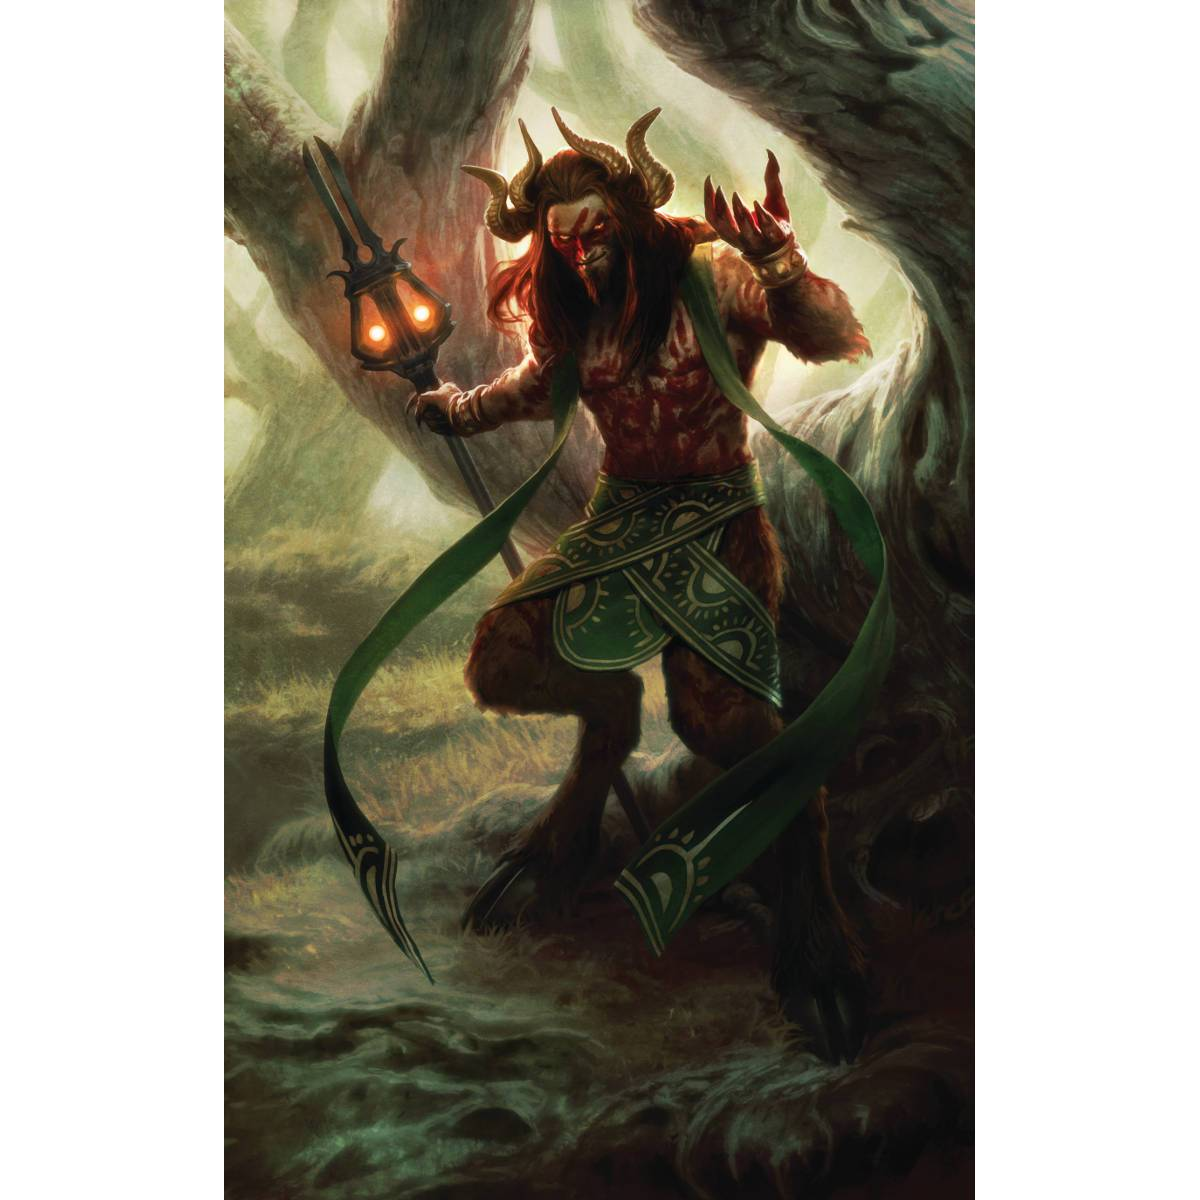 Xenagos, the Reveler Print - Print - Original Magic Art - Accessories for Magic the Gathering and other card games